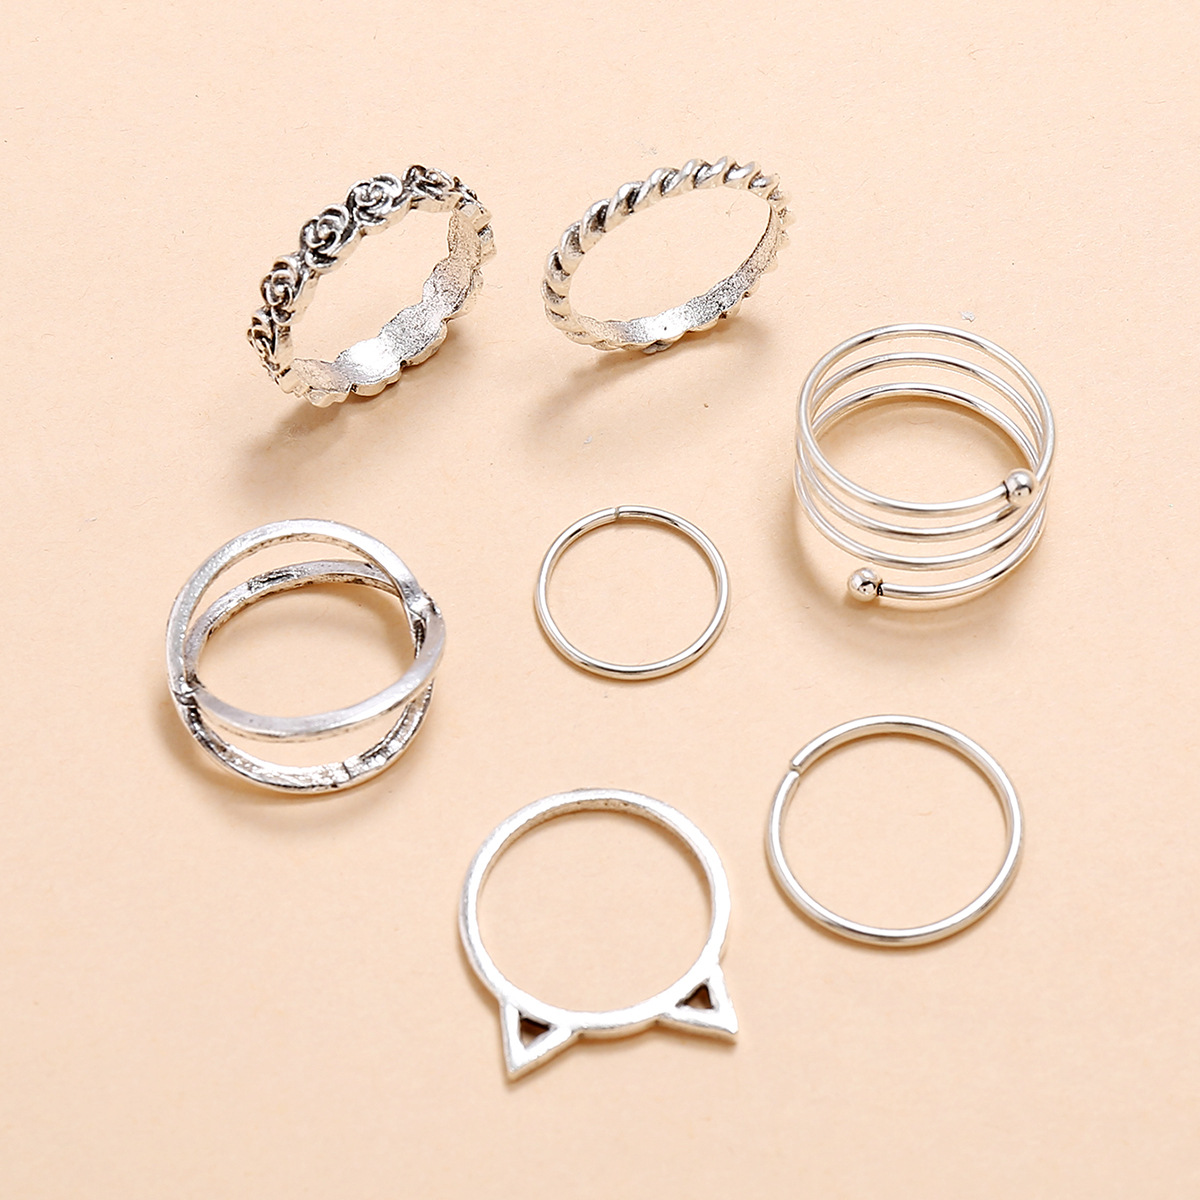 Retro Spring Cross Rose Cat Ears Twisted Twine 7 Seven-piece Set Ring NHPV205108